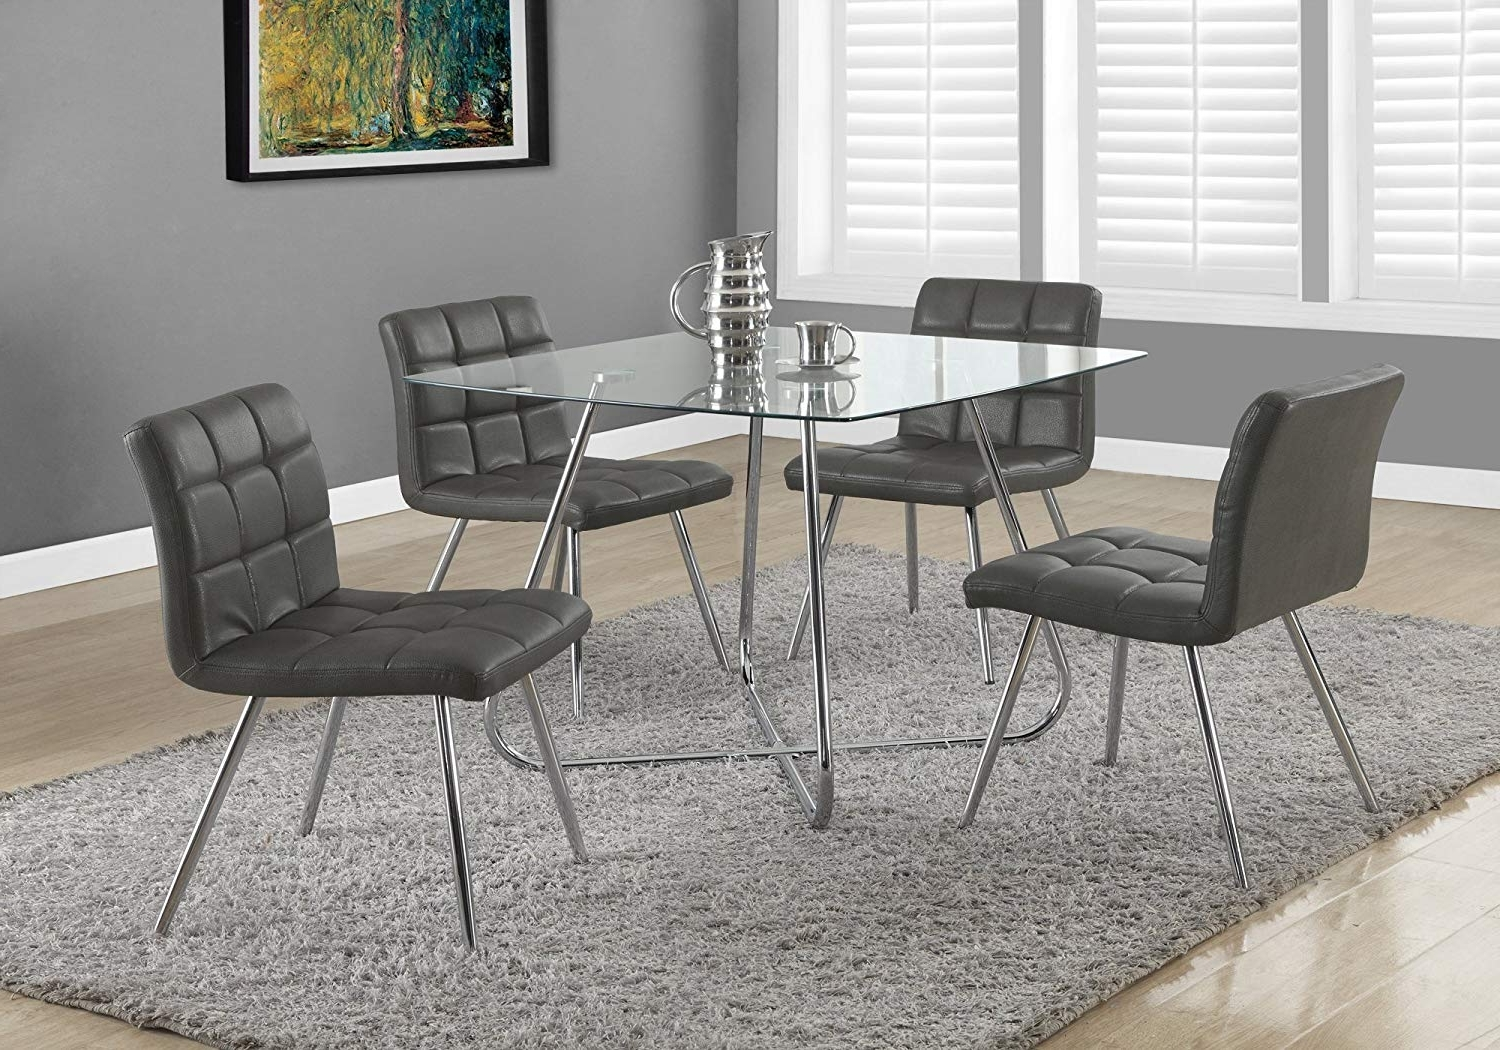 Most Recent Amazon – Monarch Specialties I 1070, Dining Table Chrome Metal With Regard To Chrome Dining Tables And Chairs (View 5 of 25)